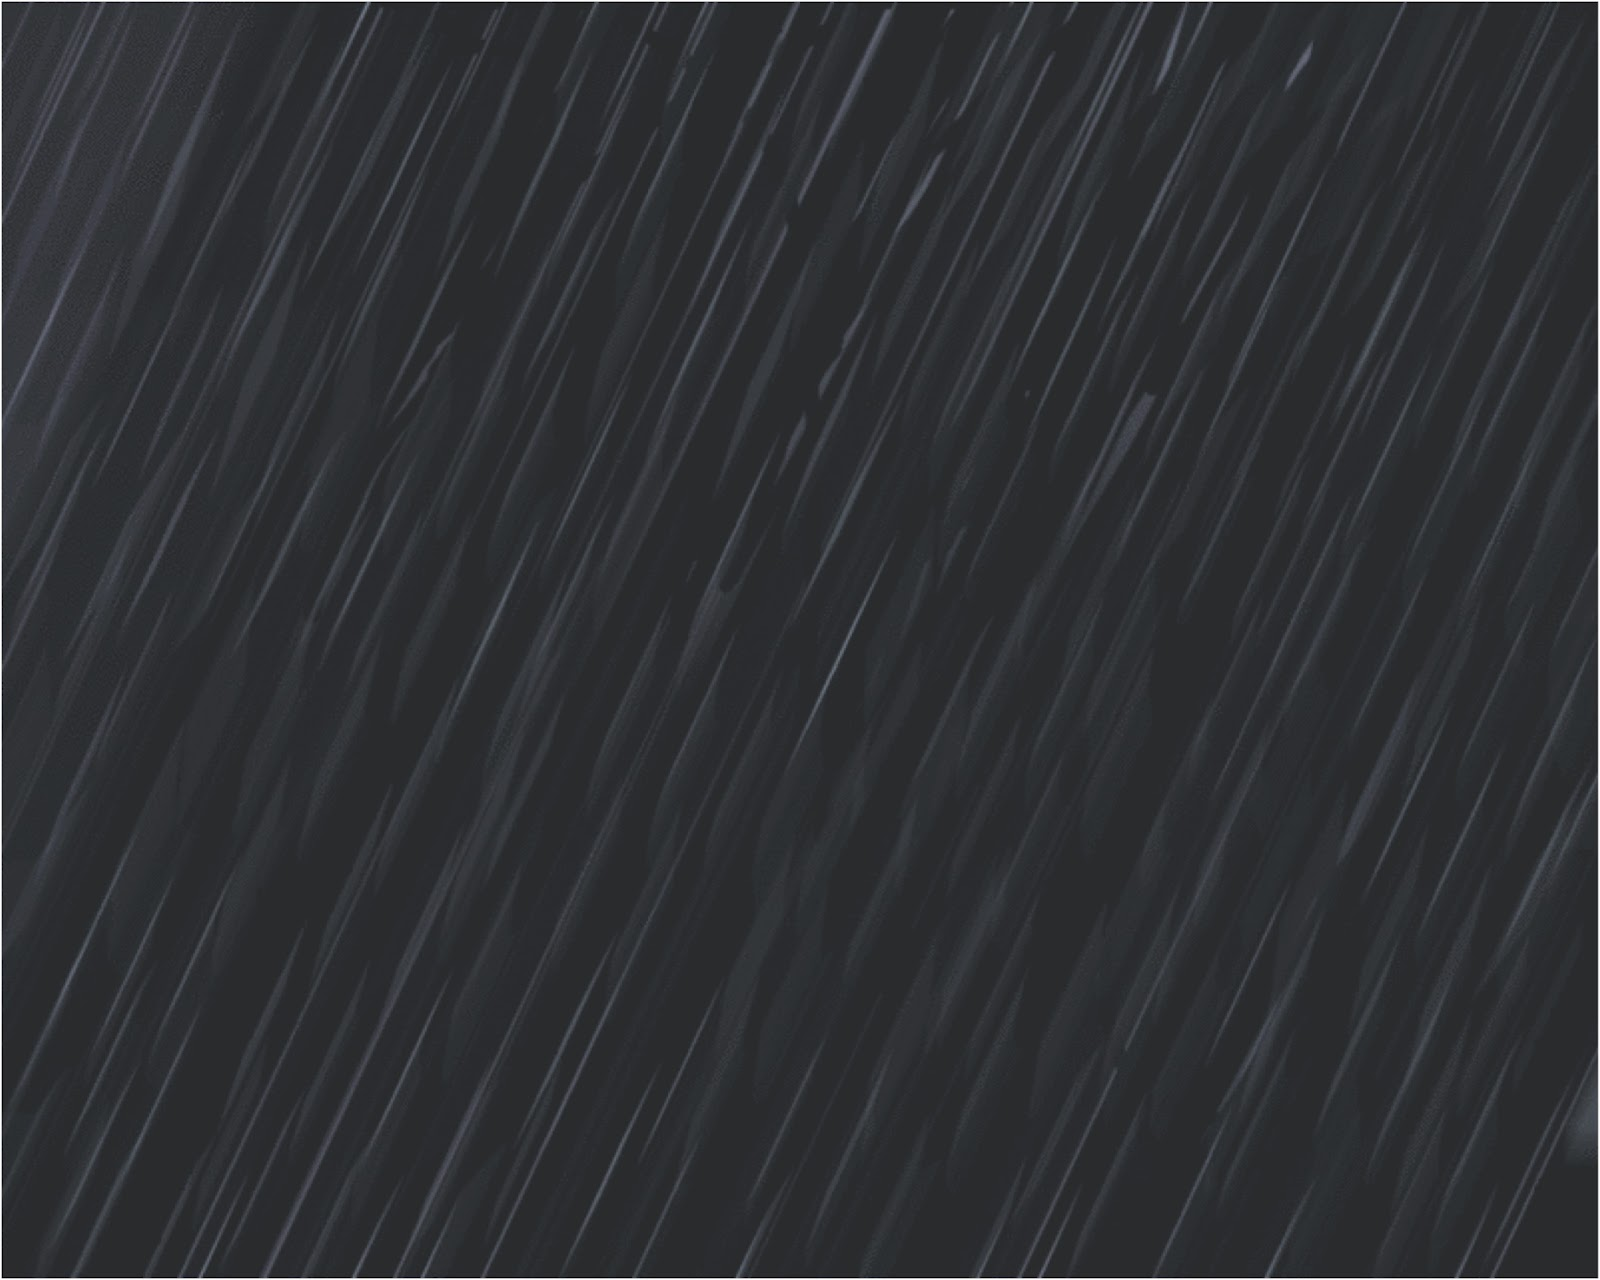 rain backgrounds and alternated 3 4 different versions of the rain 1600x1280